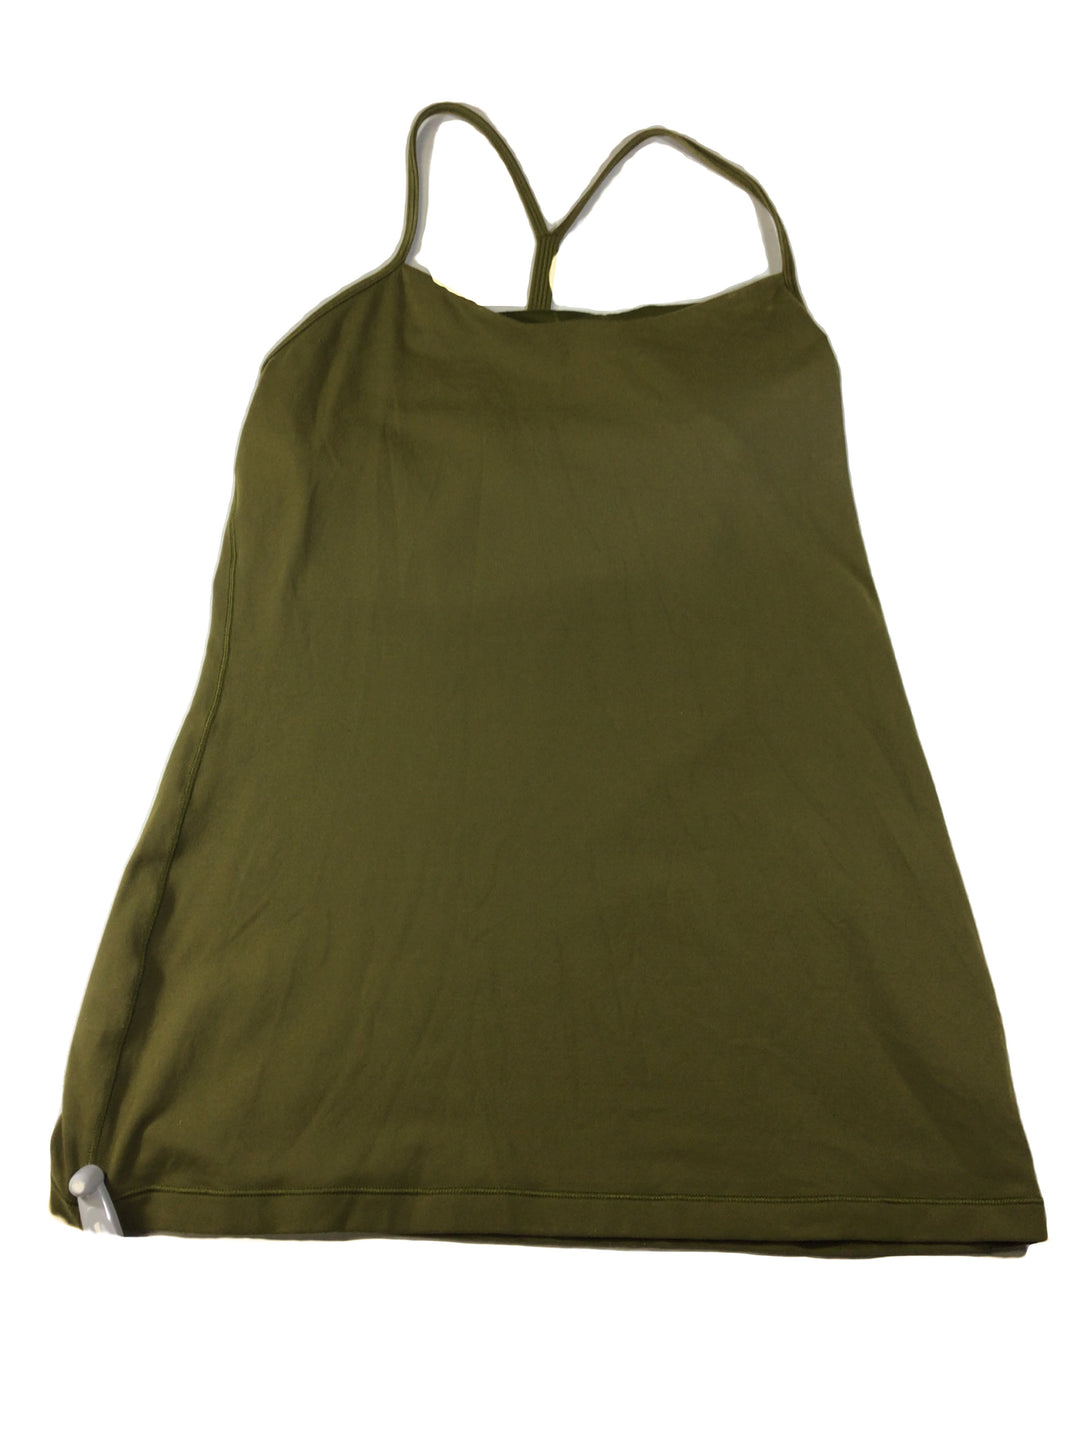 Primary Photo - BRAND: LULULEMON <BR>STYLE: ATHLETIC TANK TOP <BR>COLOR: OLIVE <BR>SIZE: M <BR>SKU: 213-213150-696